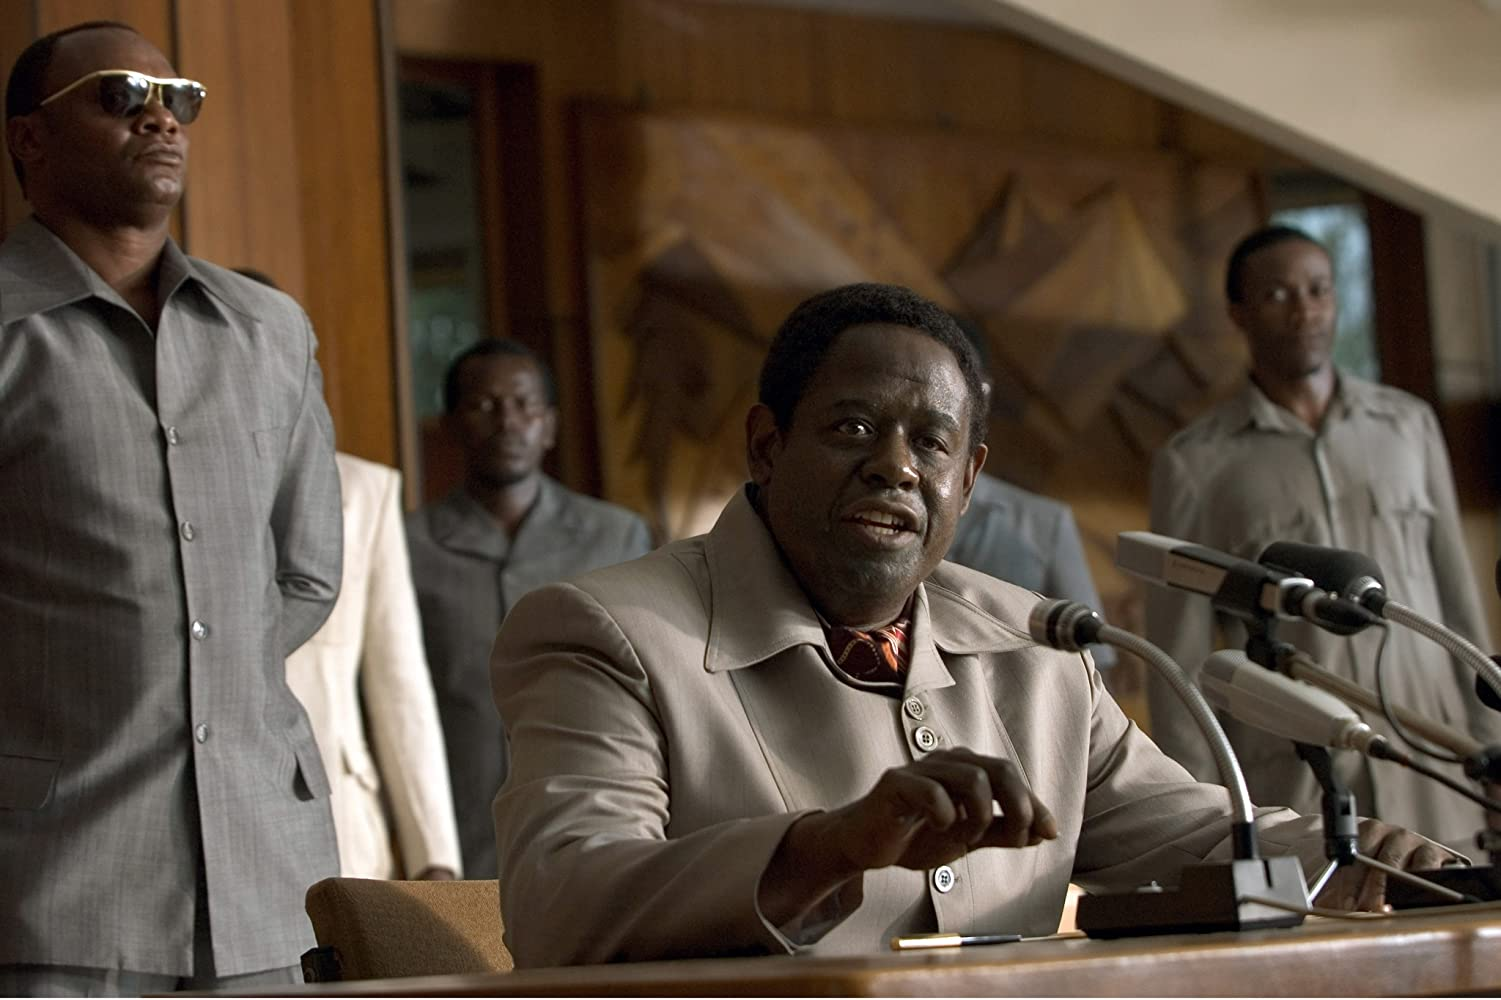 Forest Whitaker in The Last King of Scotland (2006)